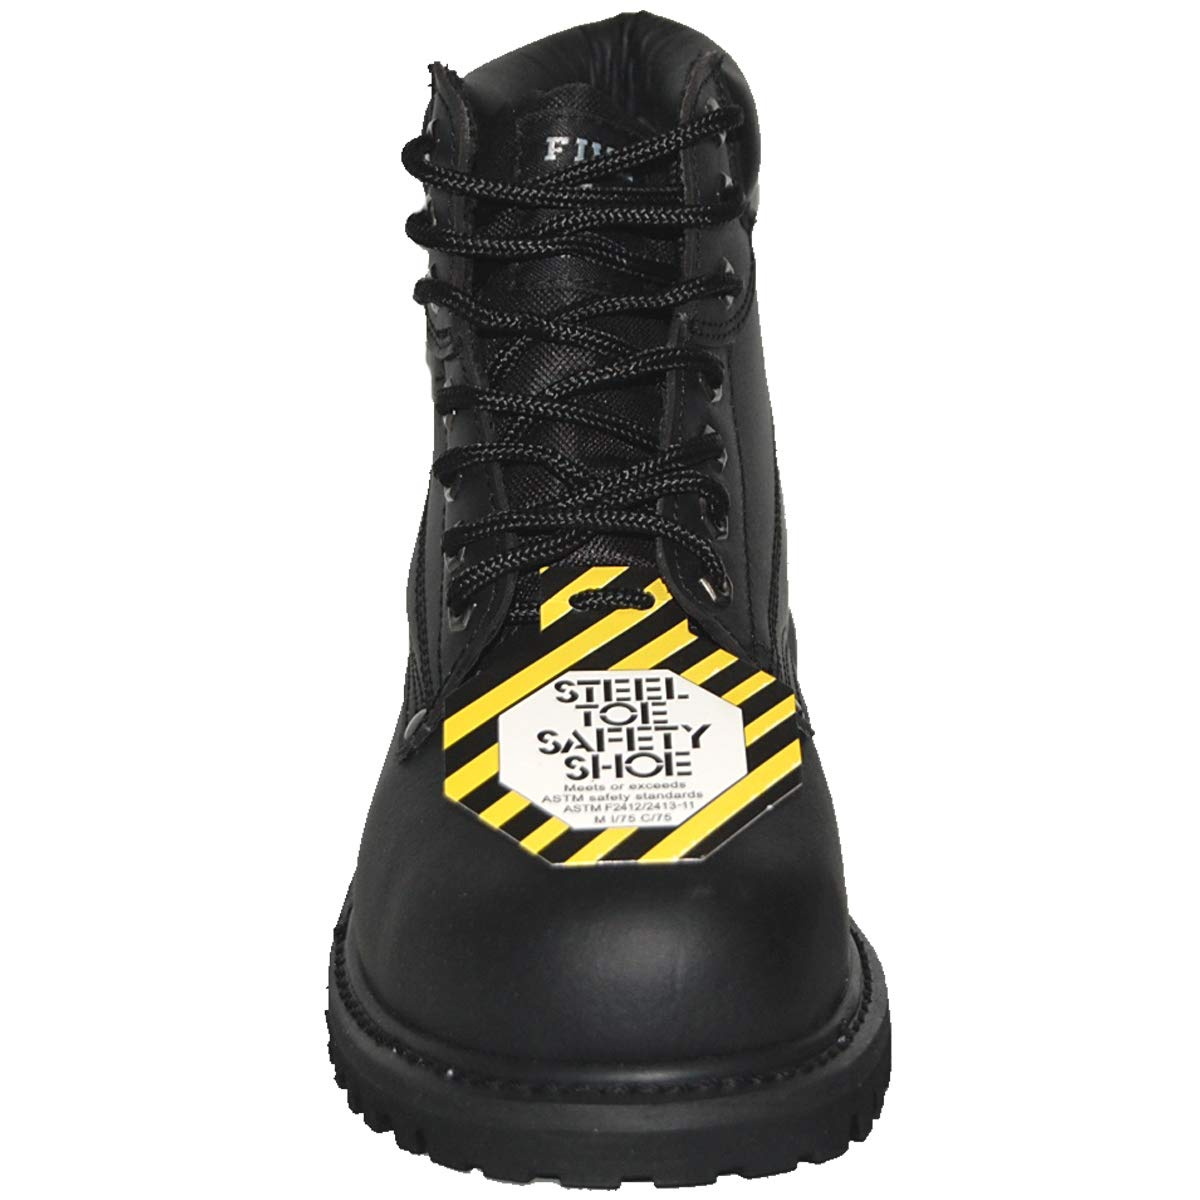 Krazy 5 Star Safety Steel Toe Leather 6 Inch Black Water Resistant Mens Work Boot